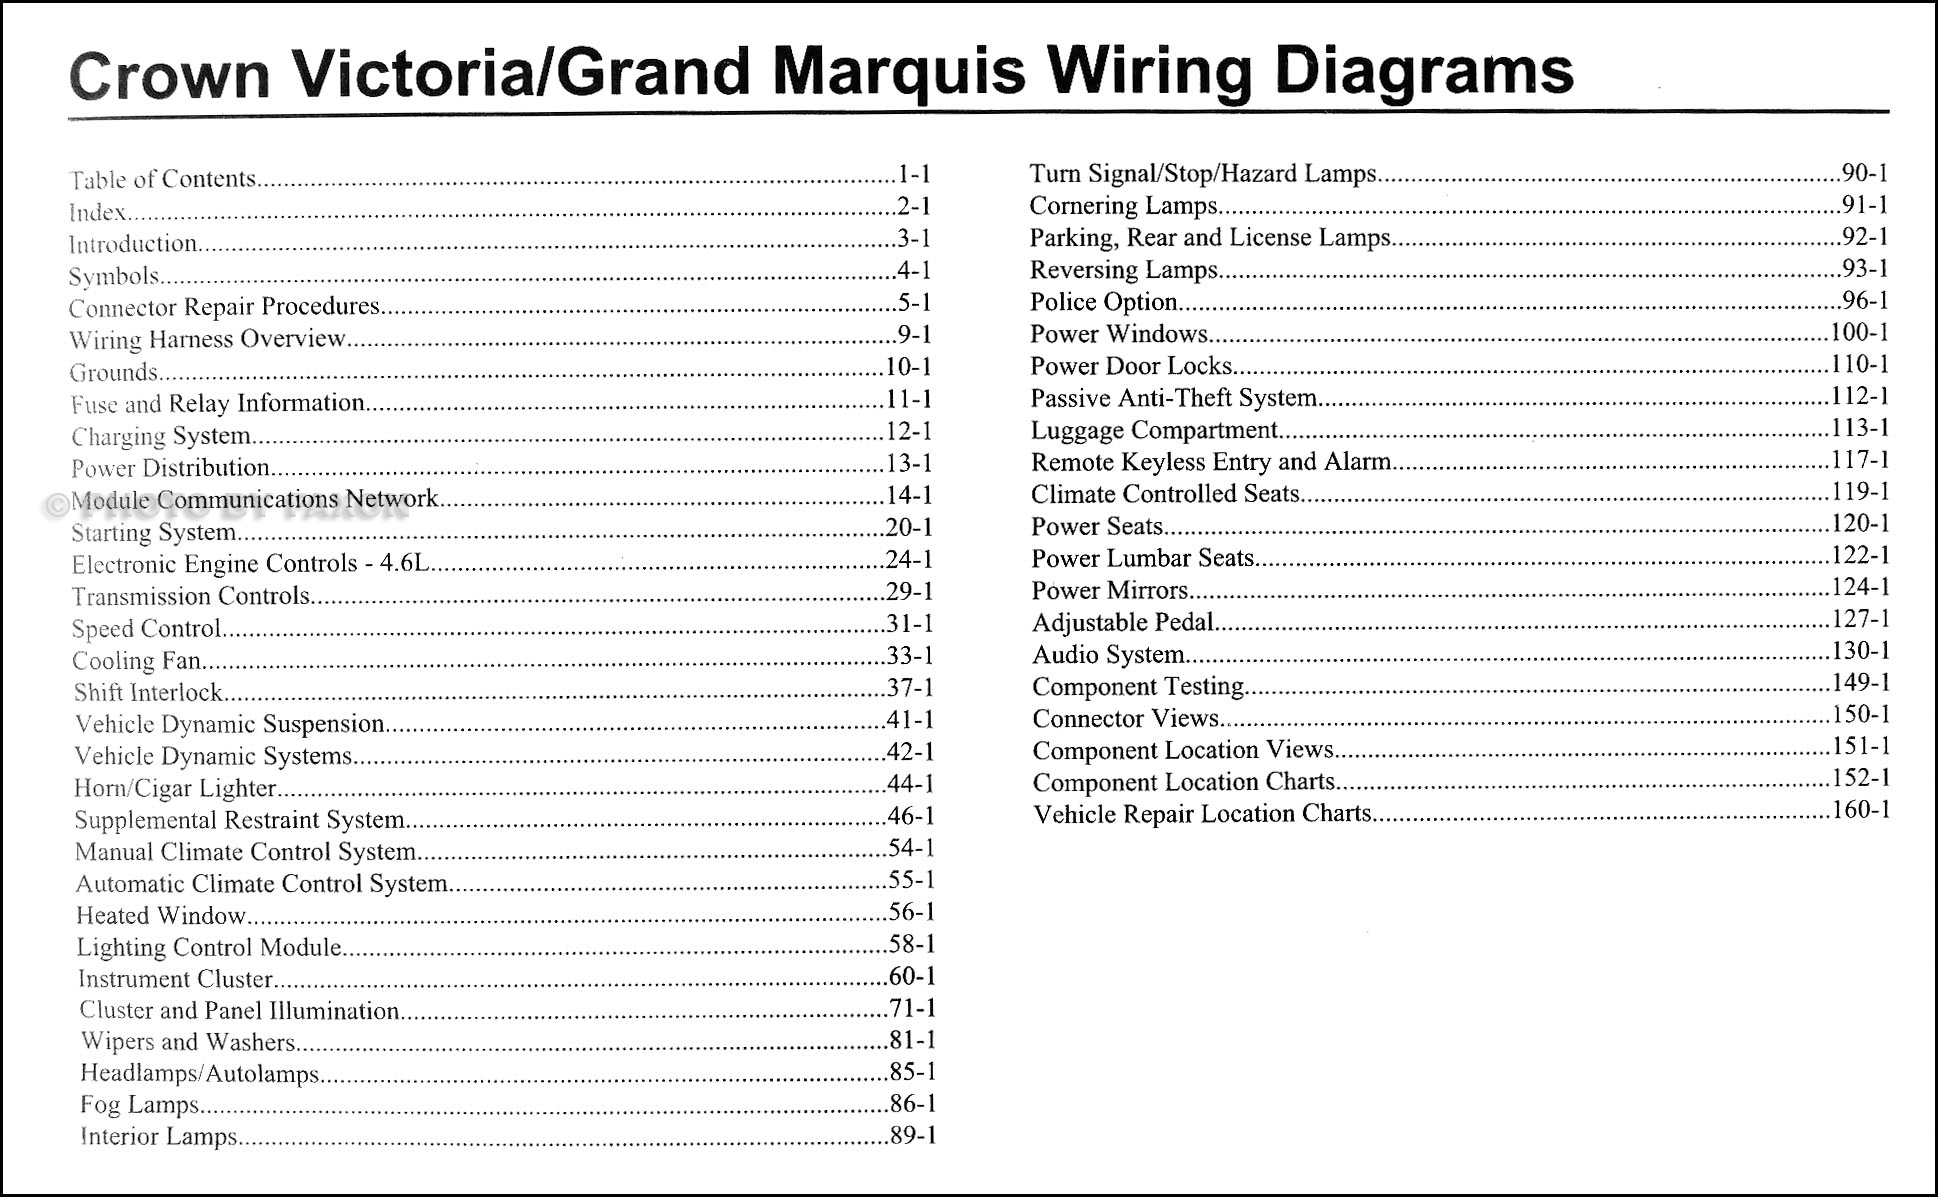 2009FordCrownVictoriaOWD TOC 2009 crown victoria & grand marquis original wiring diagram manual 2003 mercury grand marquis fuse box diagram at webbmarketing.co